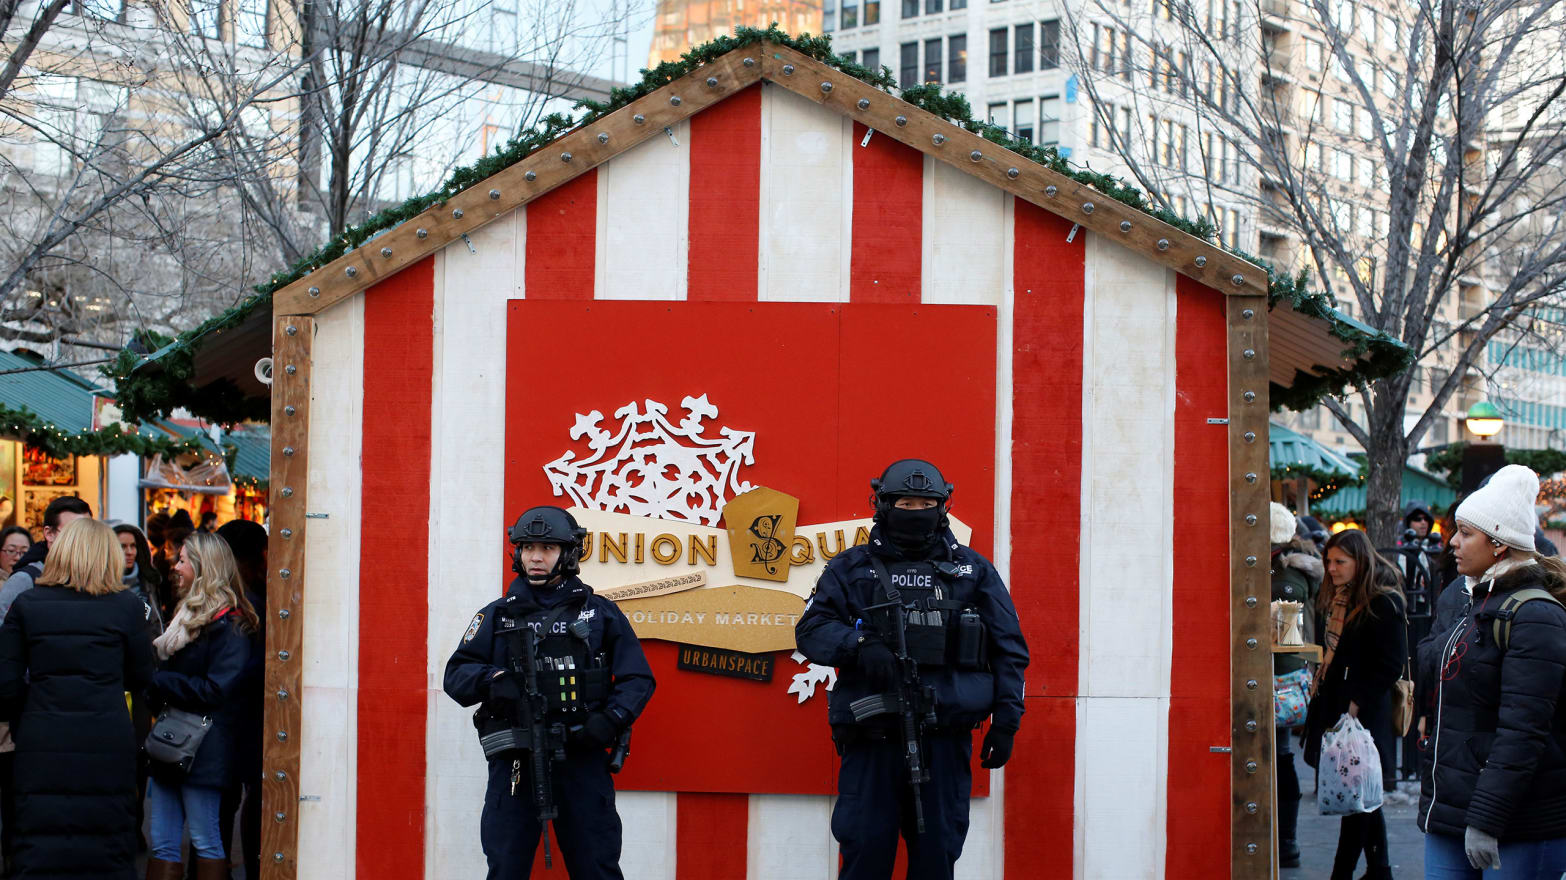 Christmas Market New York City.New York City Christmas Market Now Guarded By Heavily Armed